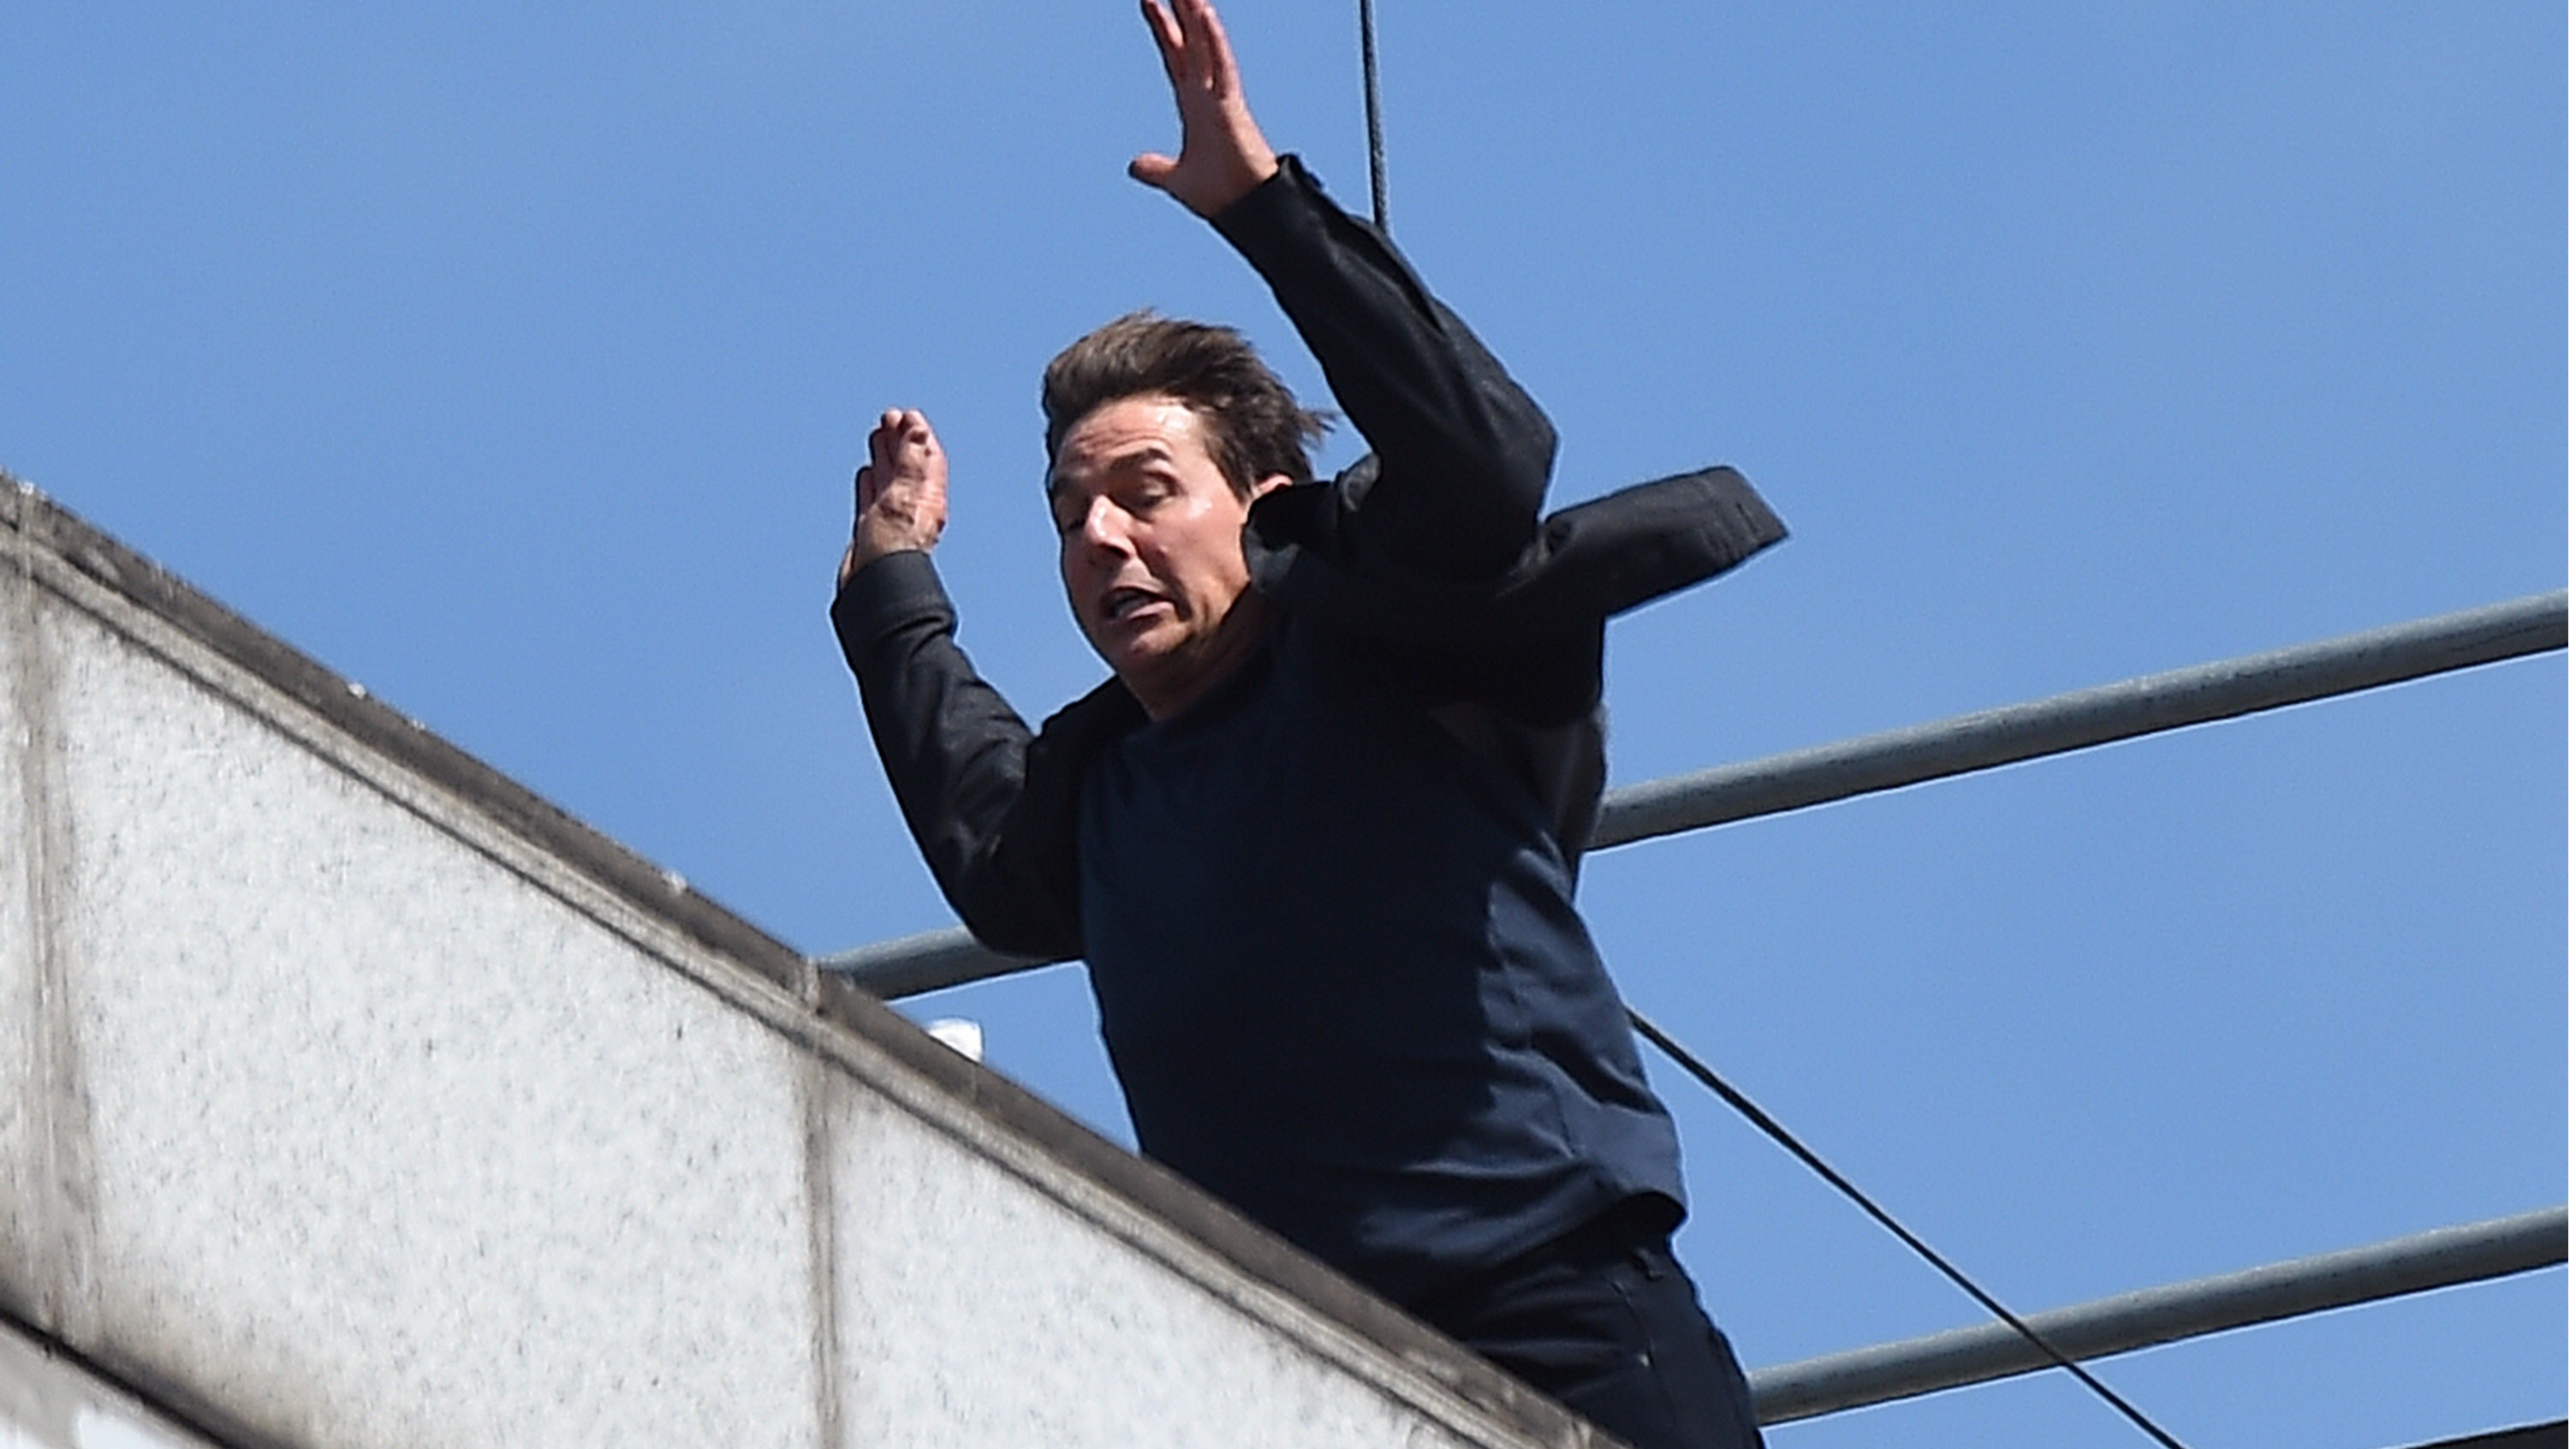 Tom Cruise Smashes Into Wall While Filming Dangerous 'Mission Impossible 6' Stunt